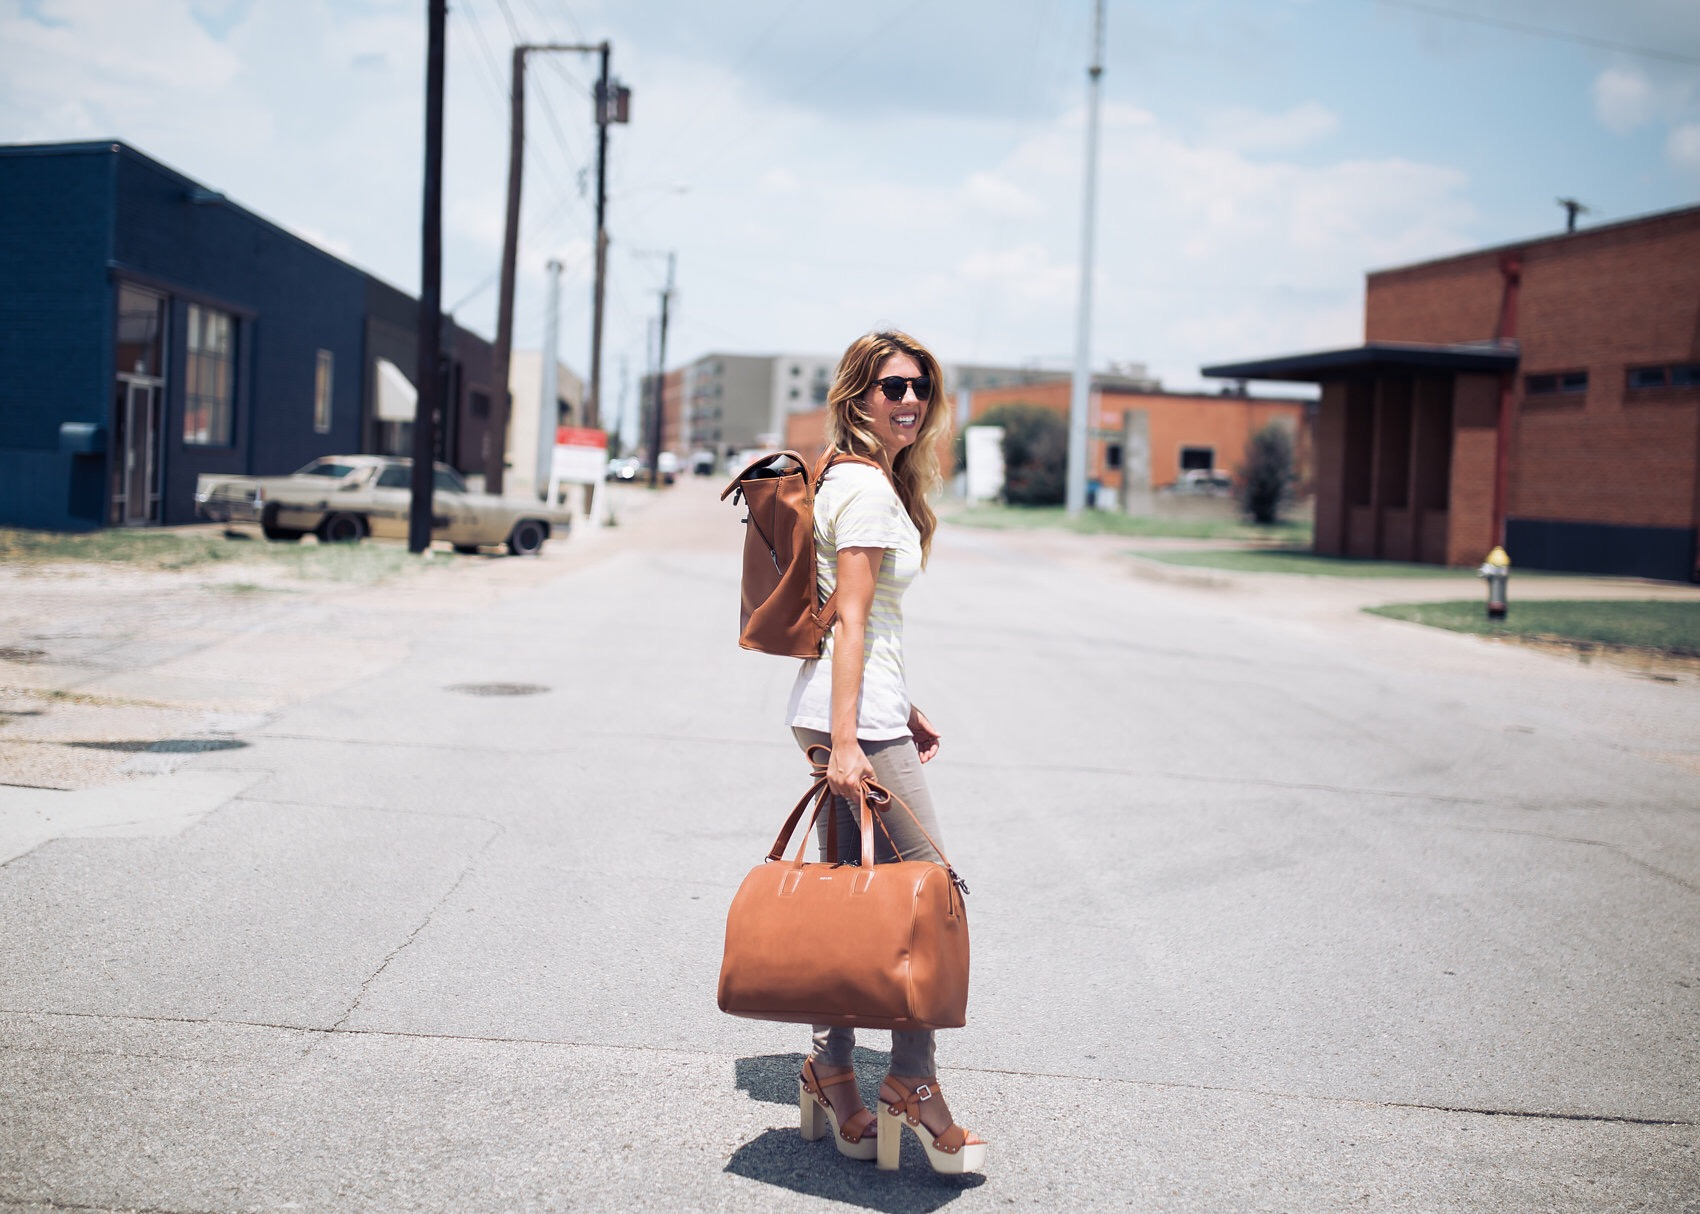 vegan blogger fashionveggie with matt & nat vegan leather luggage